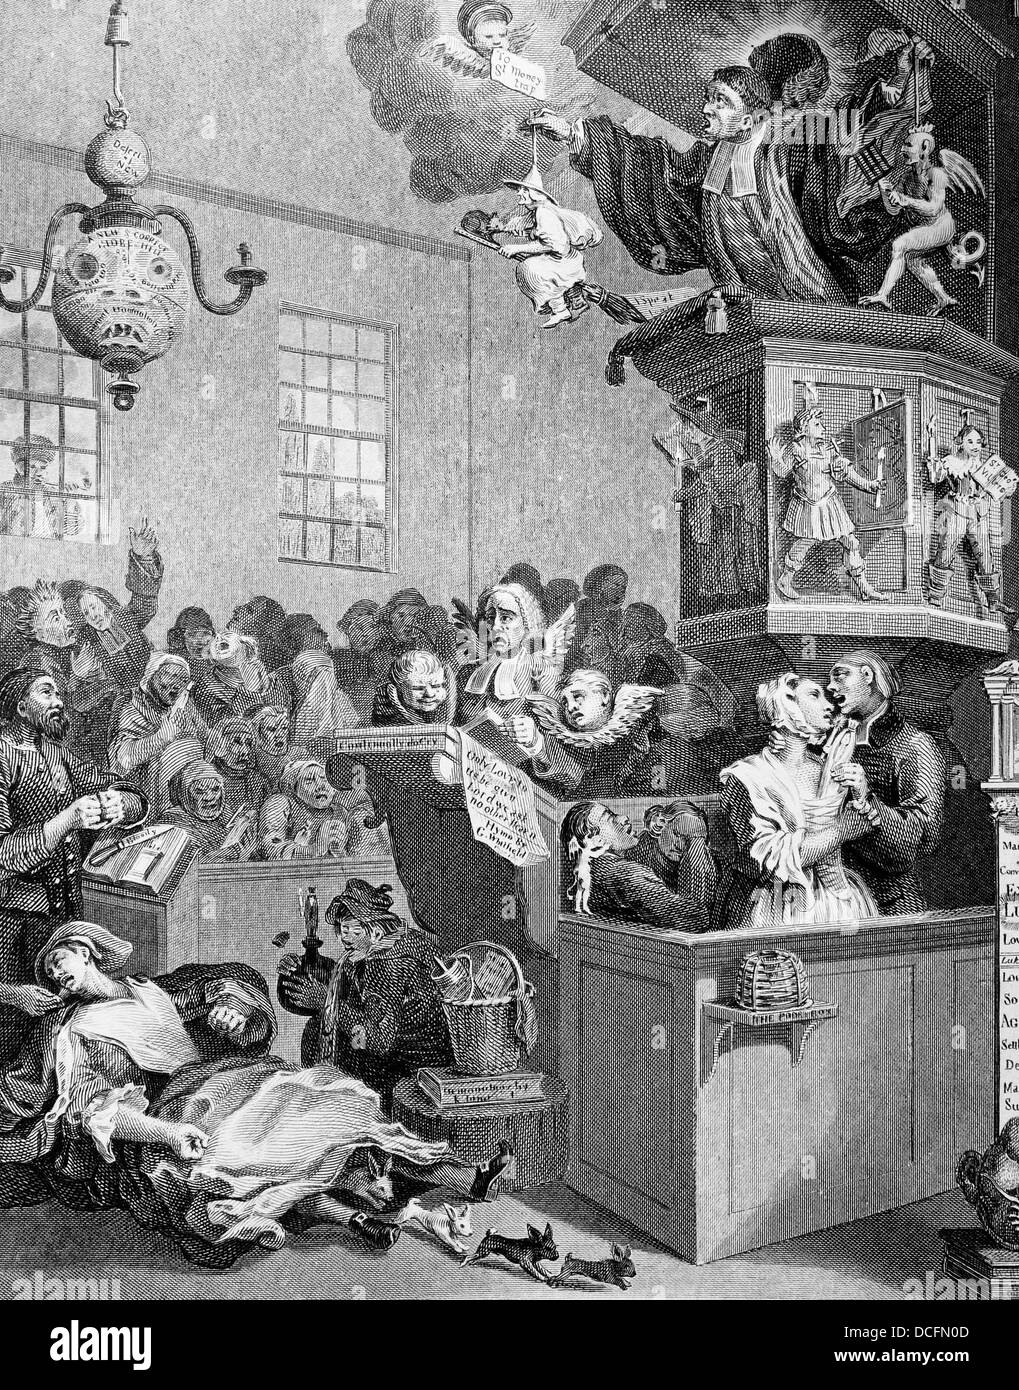 Credulity,Superstition, and Fanaticism. Engraving from the original by William Hogarth. - Stock Image